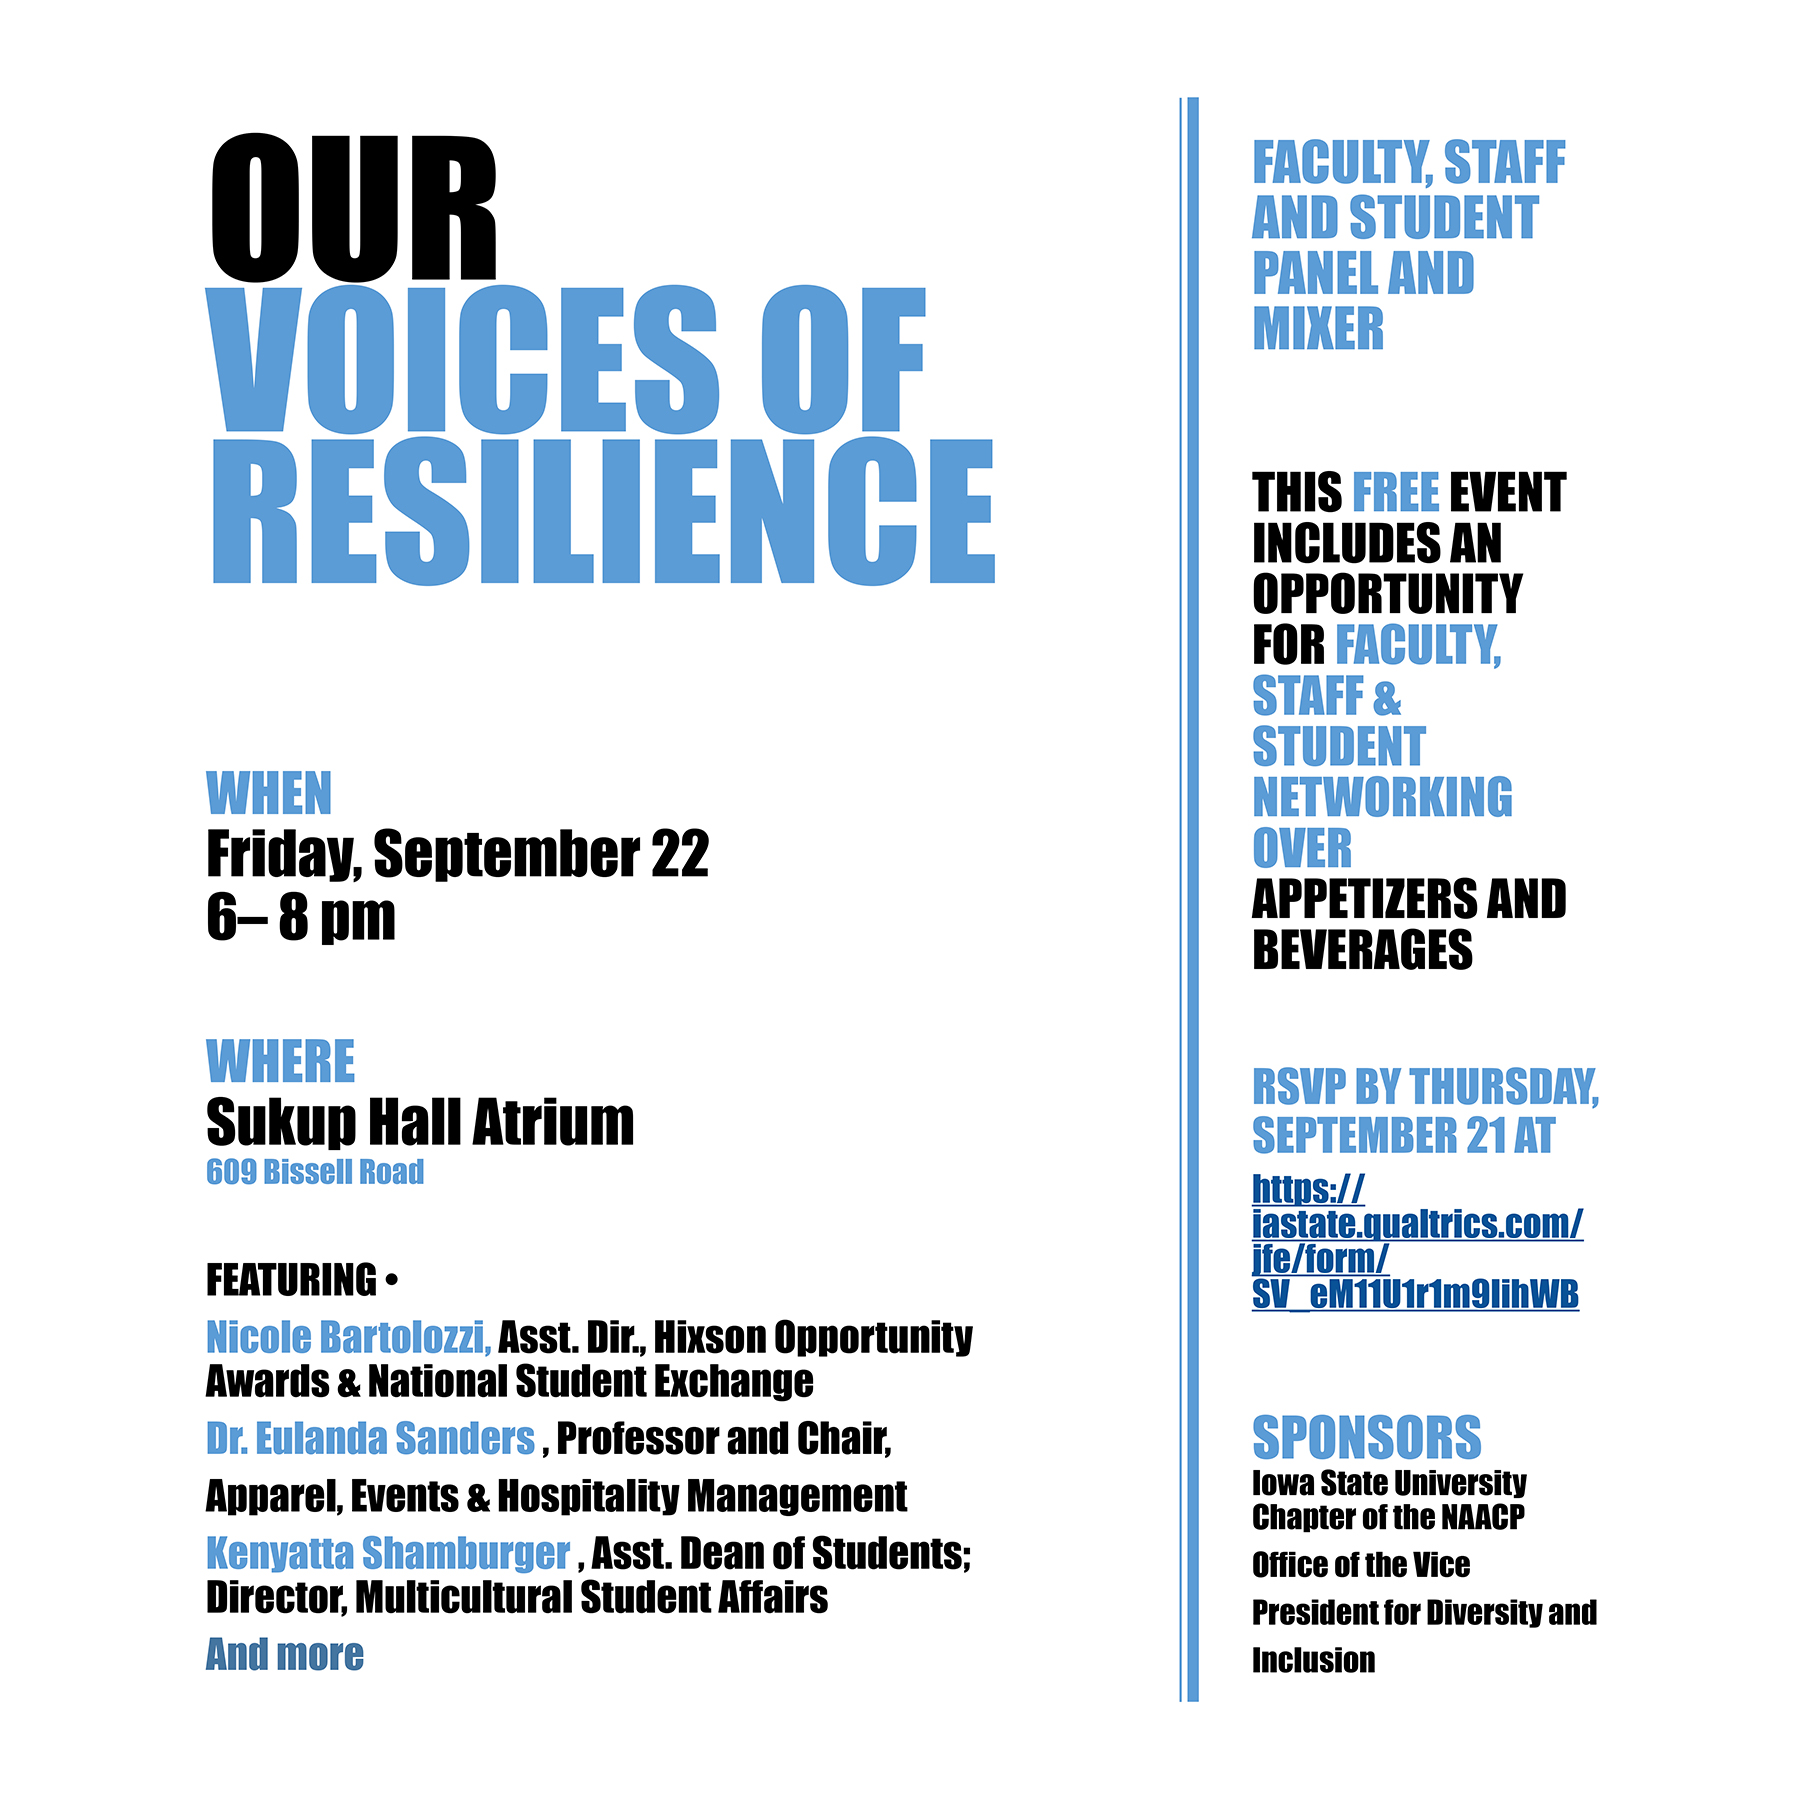 Our Voices of Resilience